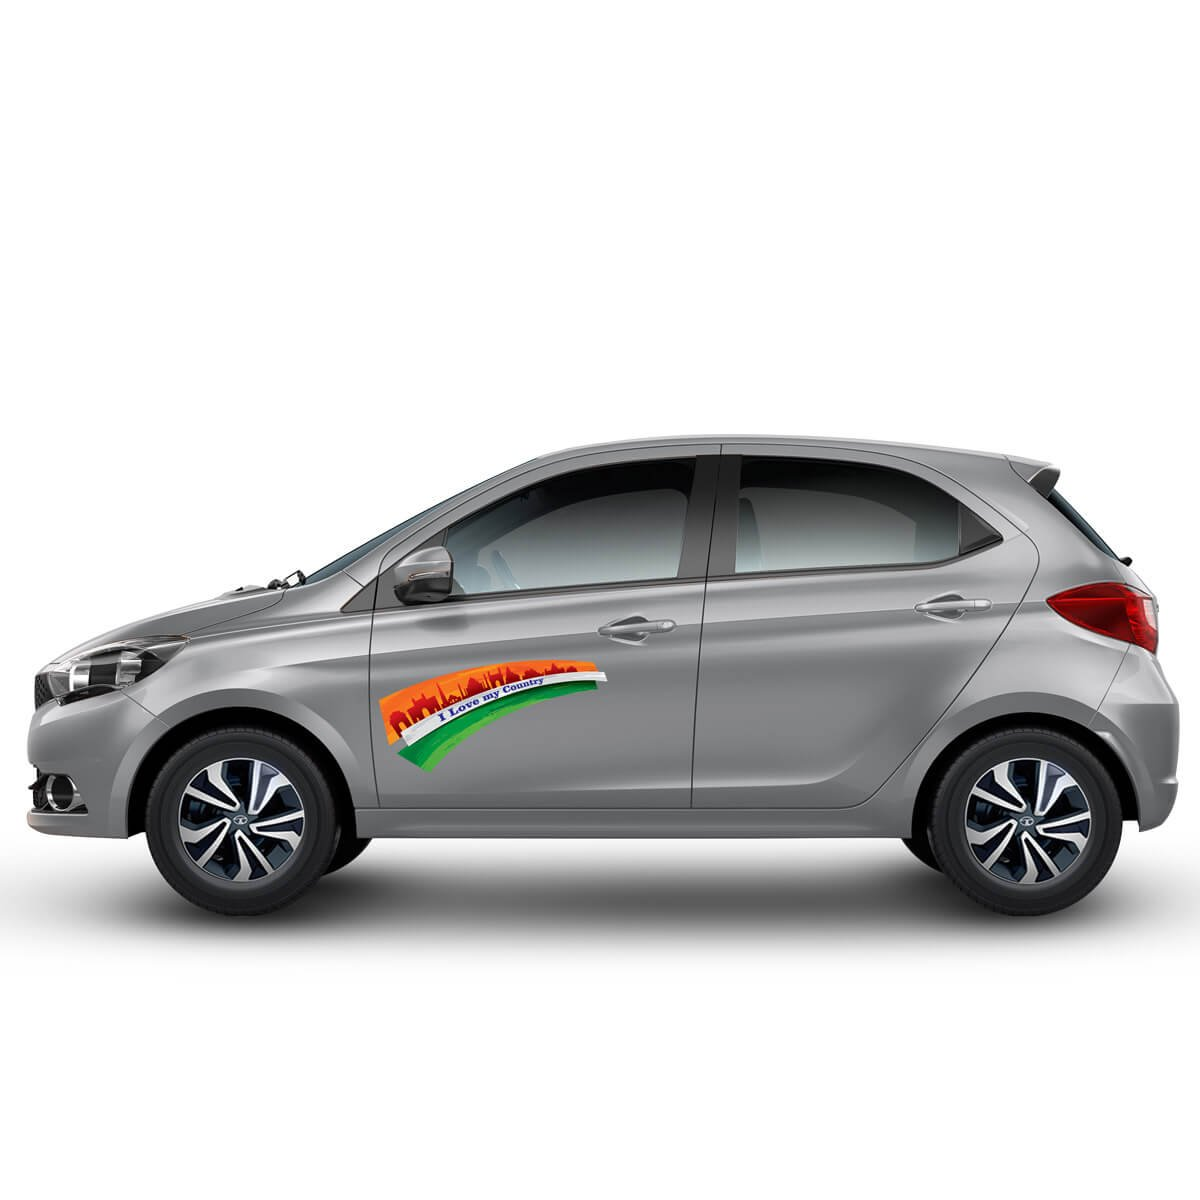 Autographix car sticker decals splendid indian monument styling accessories amazon in car motorbike